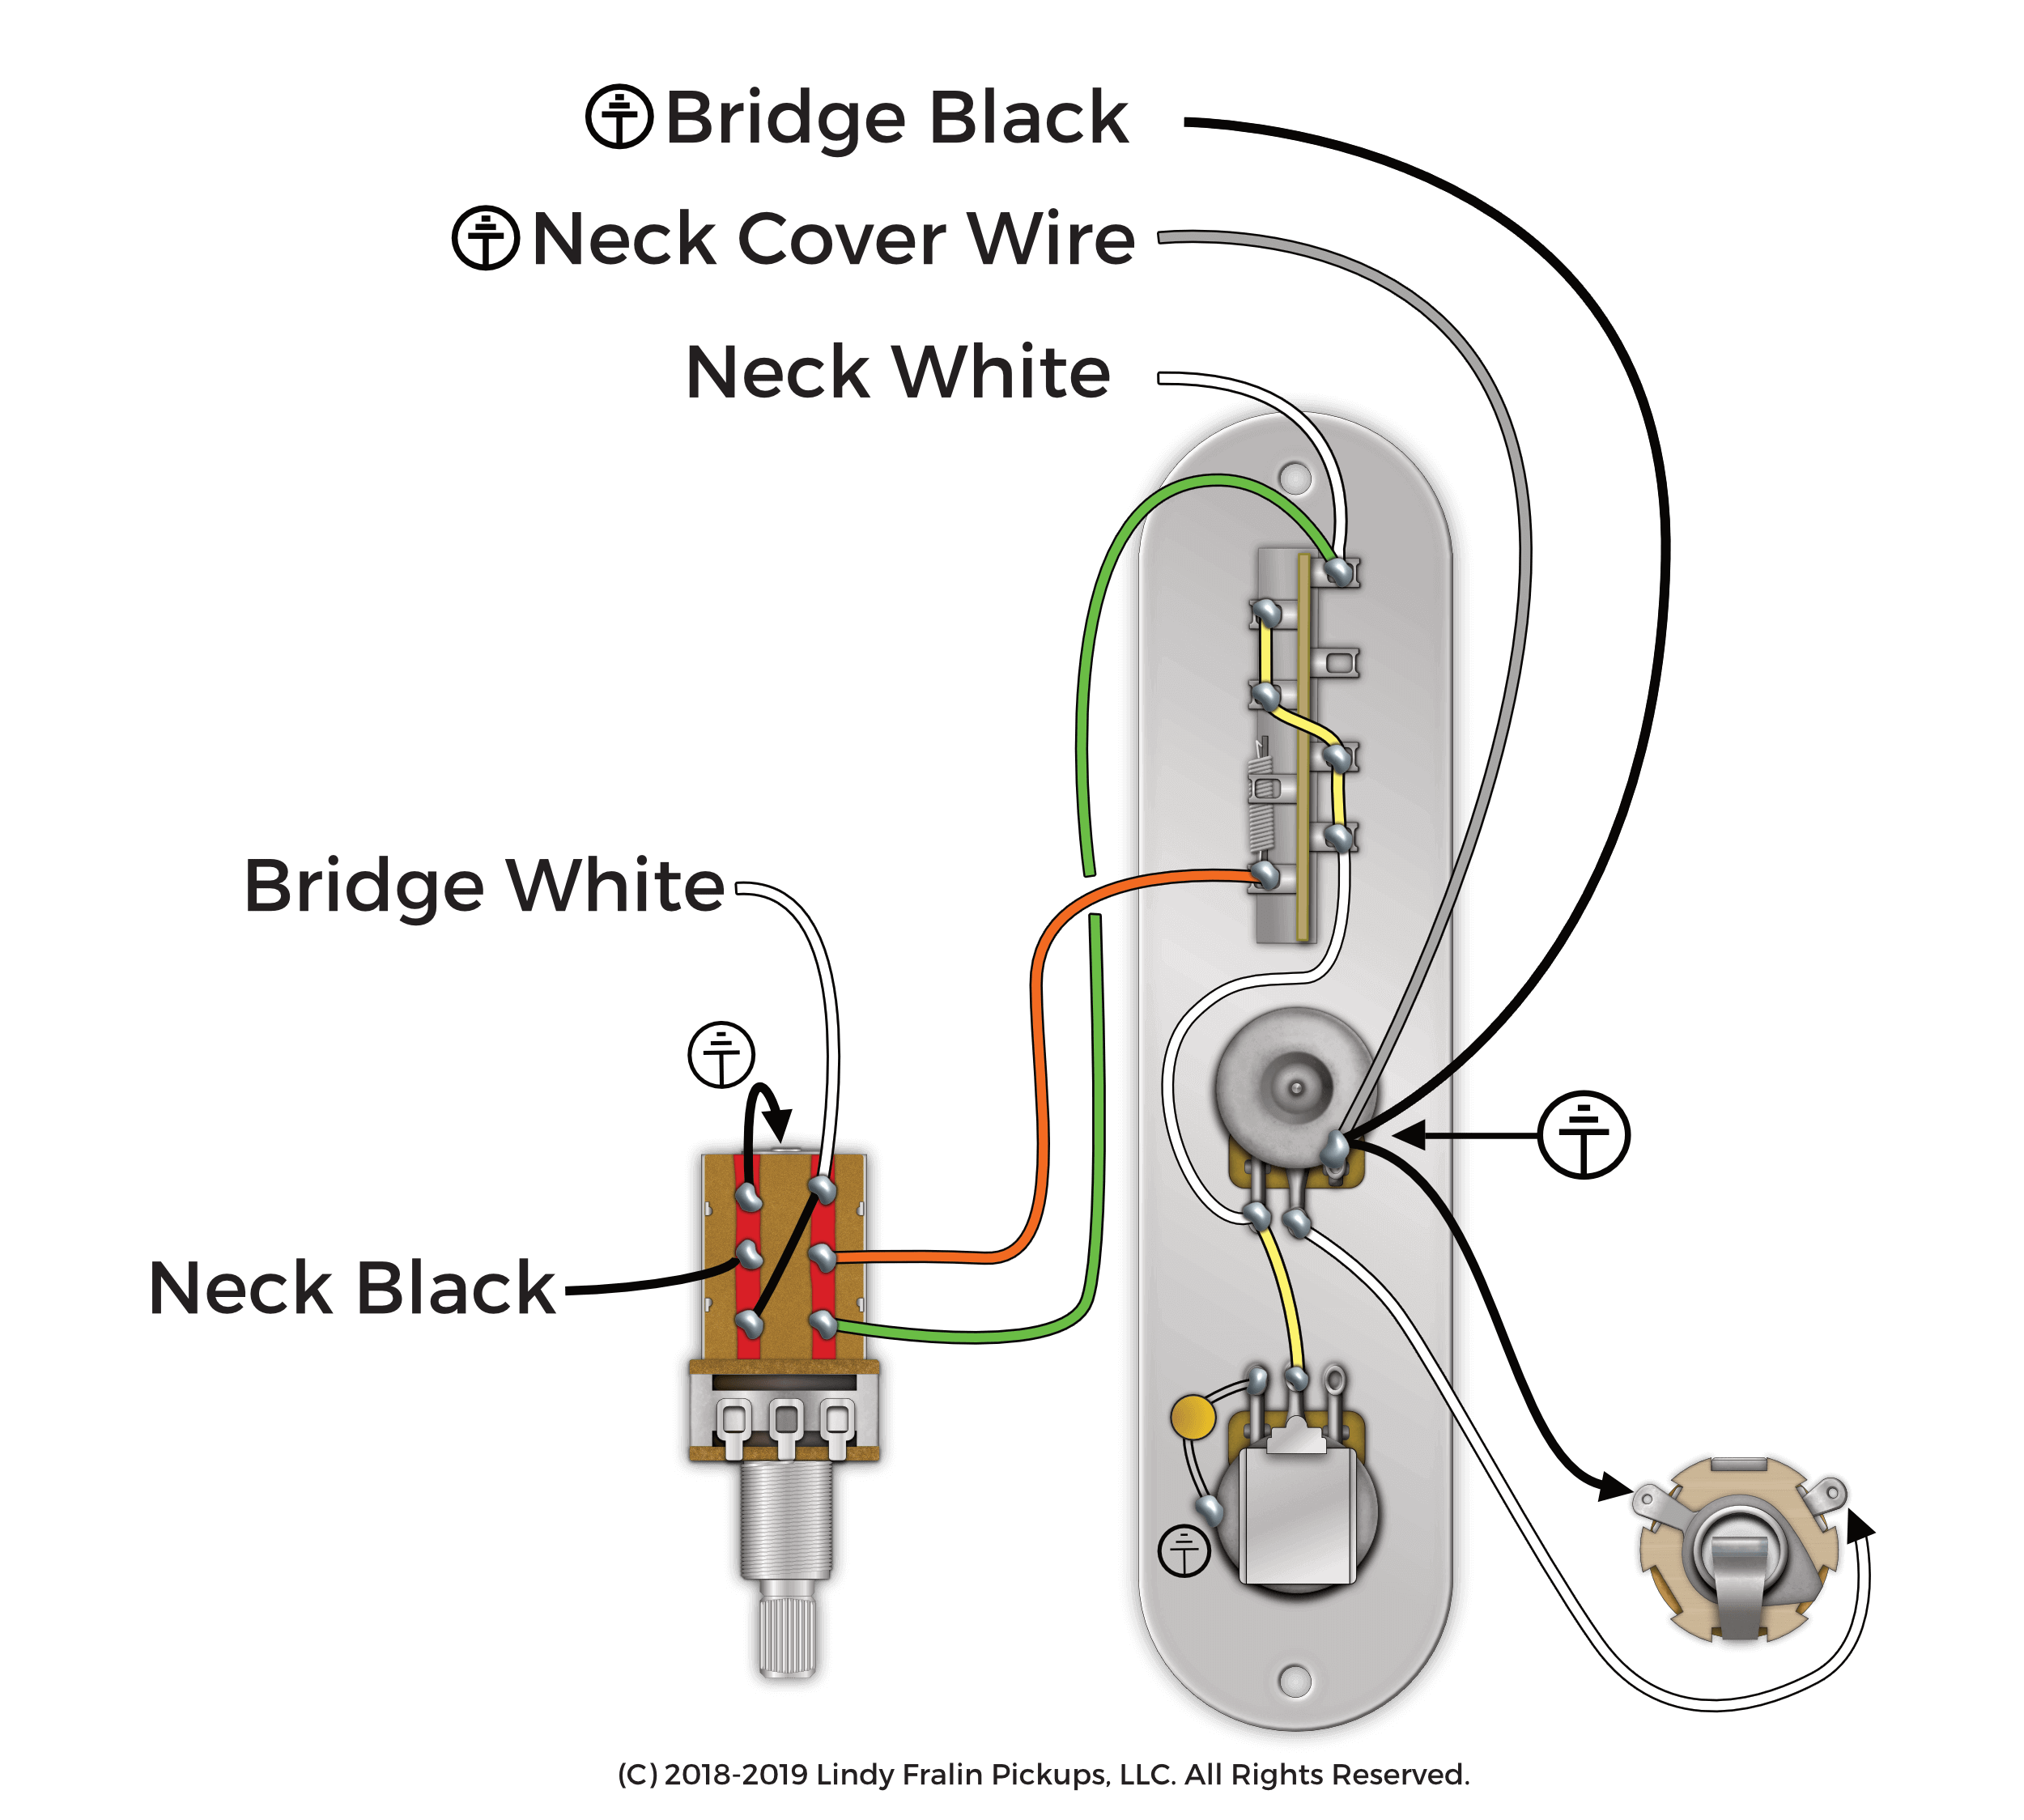 Fralin Pickups - 4-Way Switching With A Push Pull Pot | With Push Pull Tone Pot Wiring Diagram For Telecaster |  | Fralin Pickups